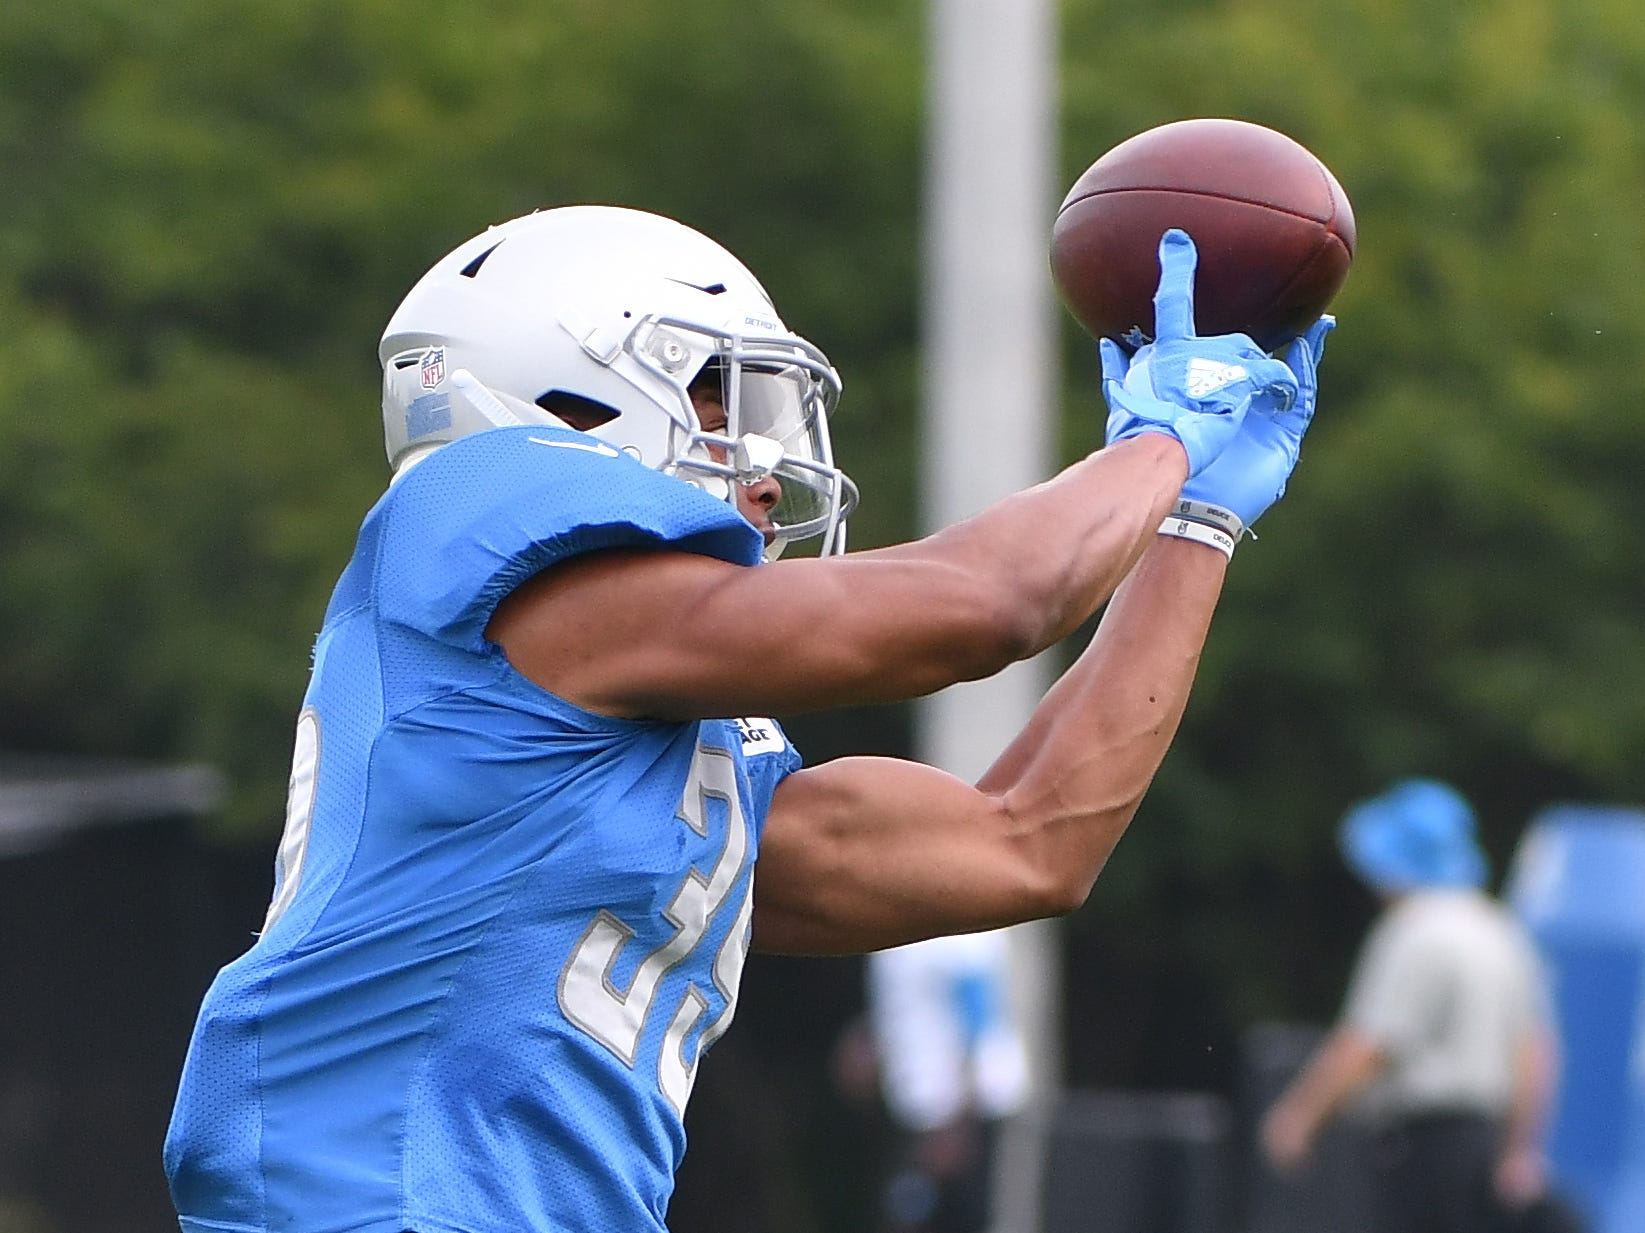 Lions cornerback Jamal Agnew pulls down a reception during drills.   Detroit Lions training camp in Allen Park, Michigan on August 1, 2018. (Image by Daniel Mears / The Detroit News)